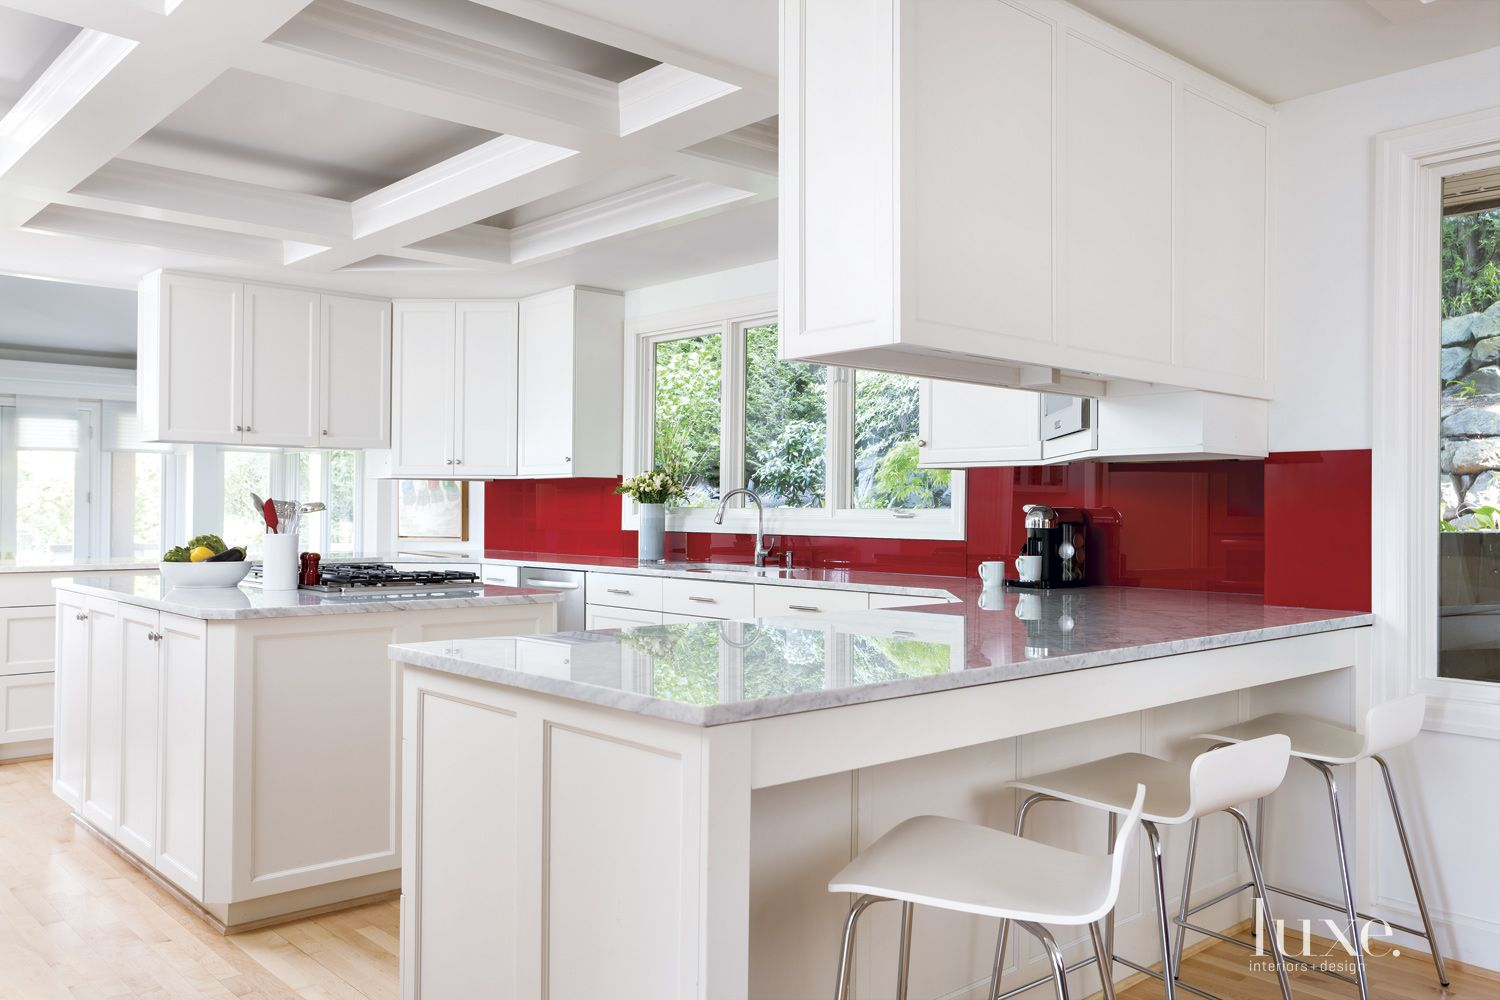 Modern White Kitchen with Red Backsplash